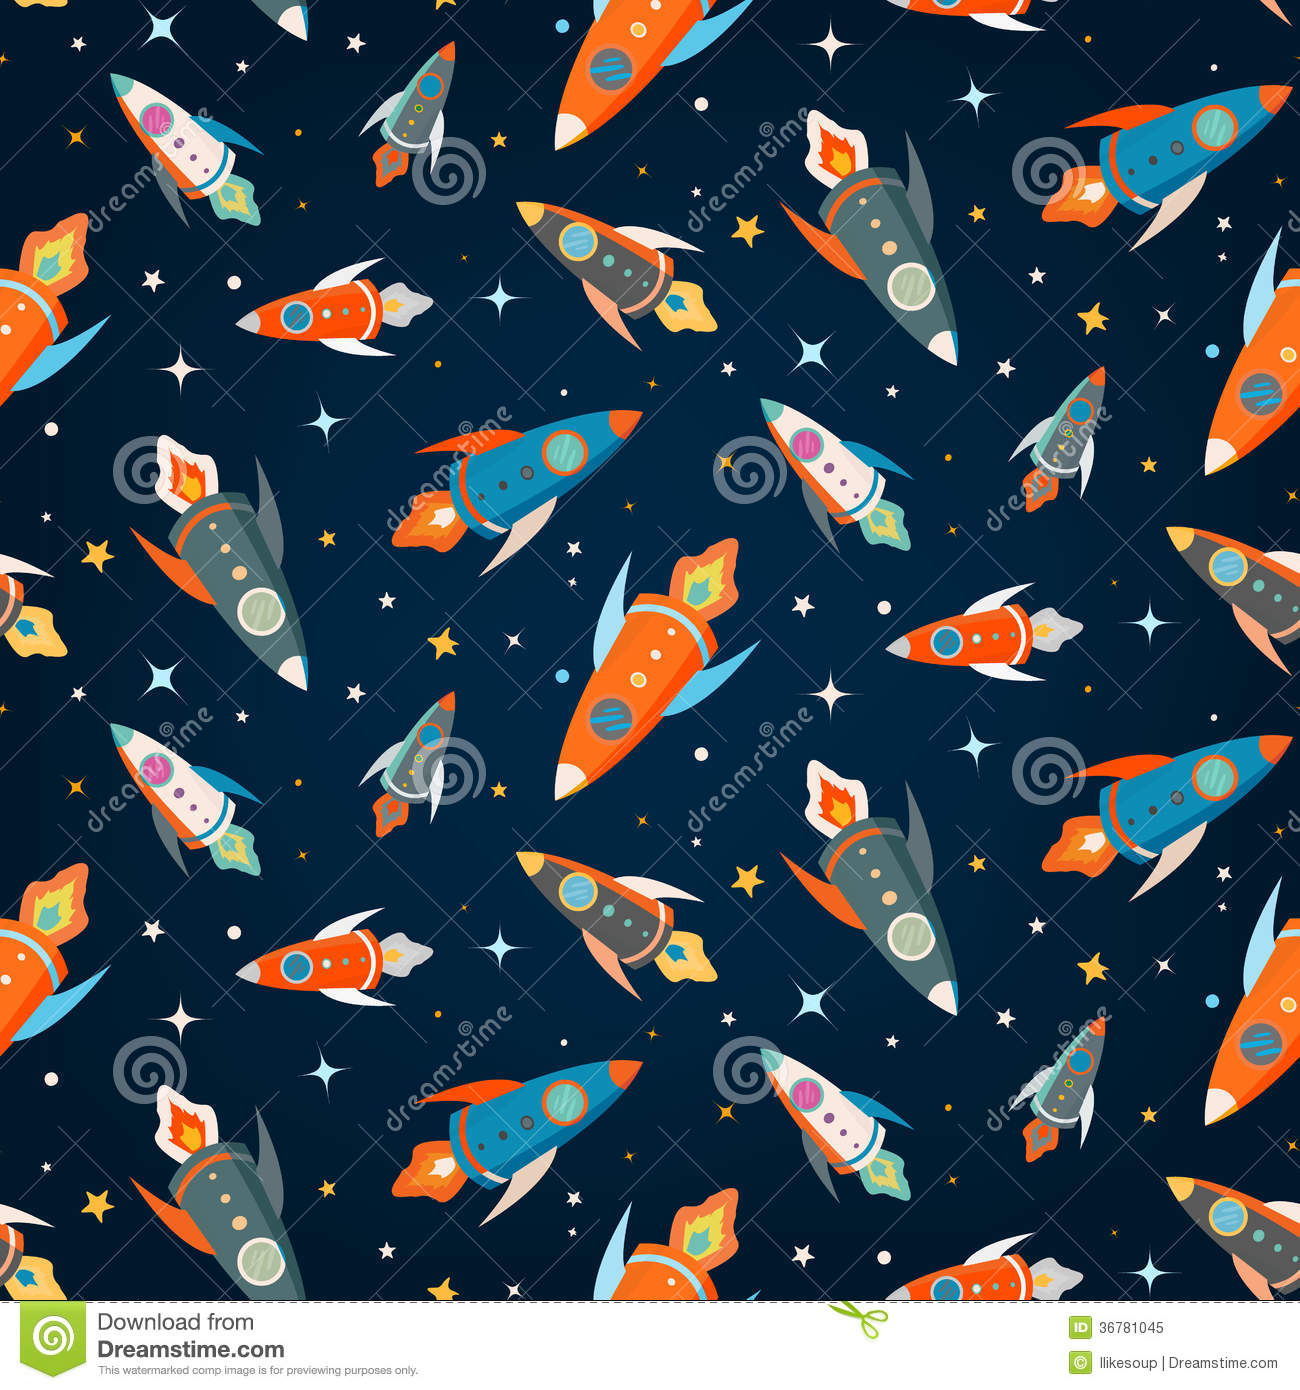 Seamless vector pattern of colorful spaceships stock for Outer space pattern